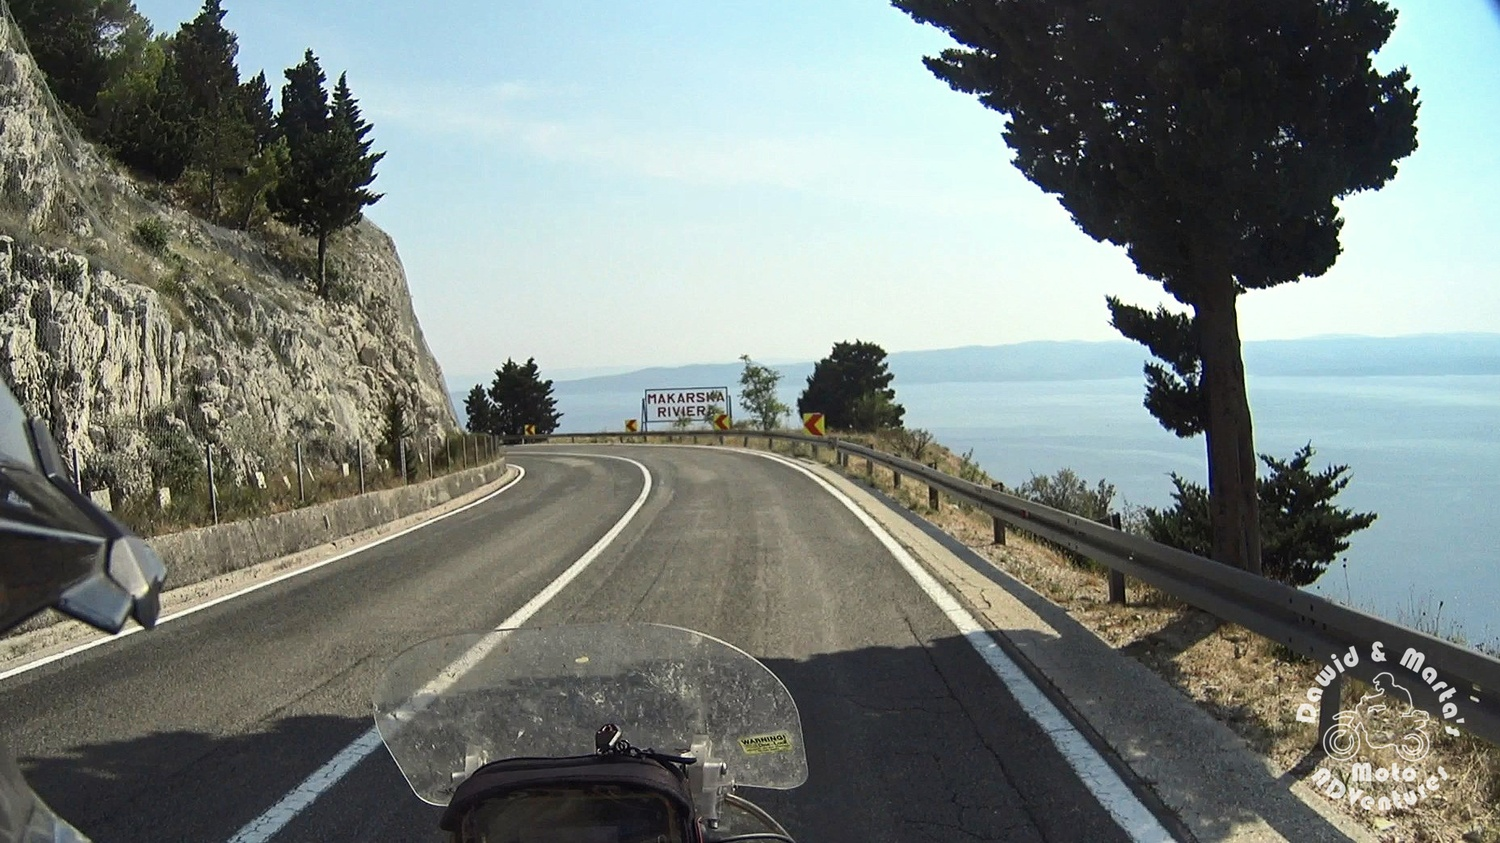 Makarska riviera sign at the Adriatic Highway